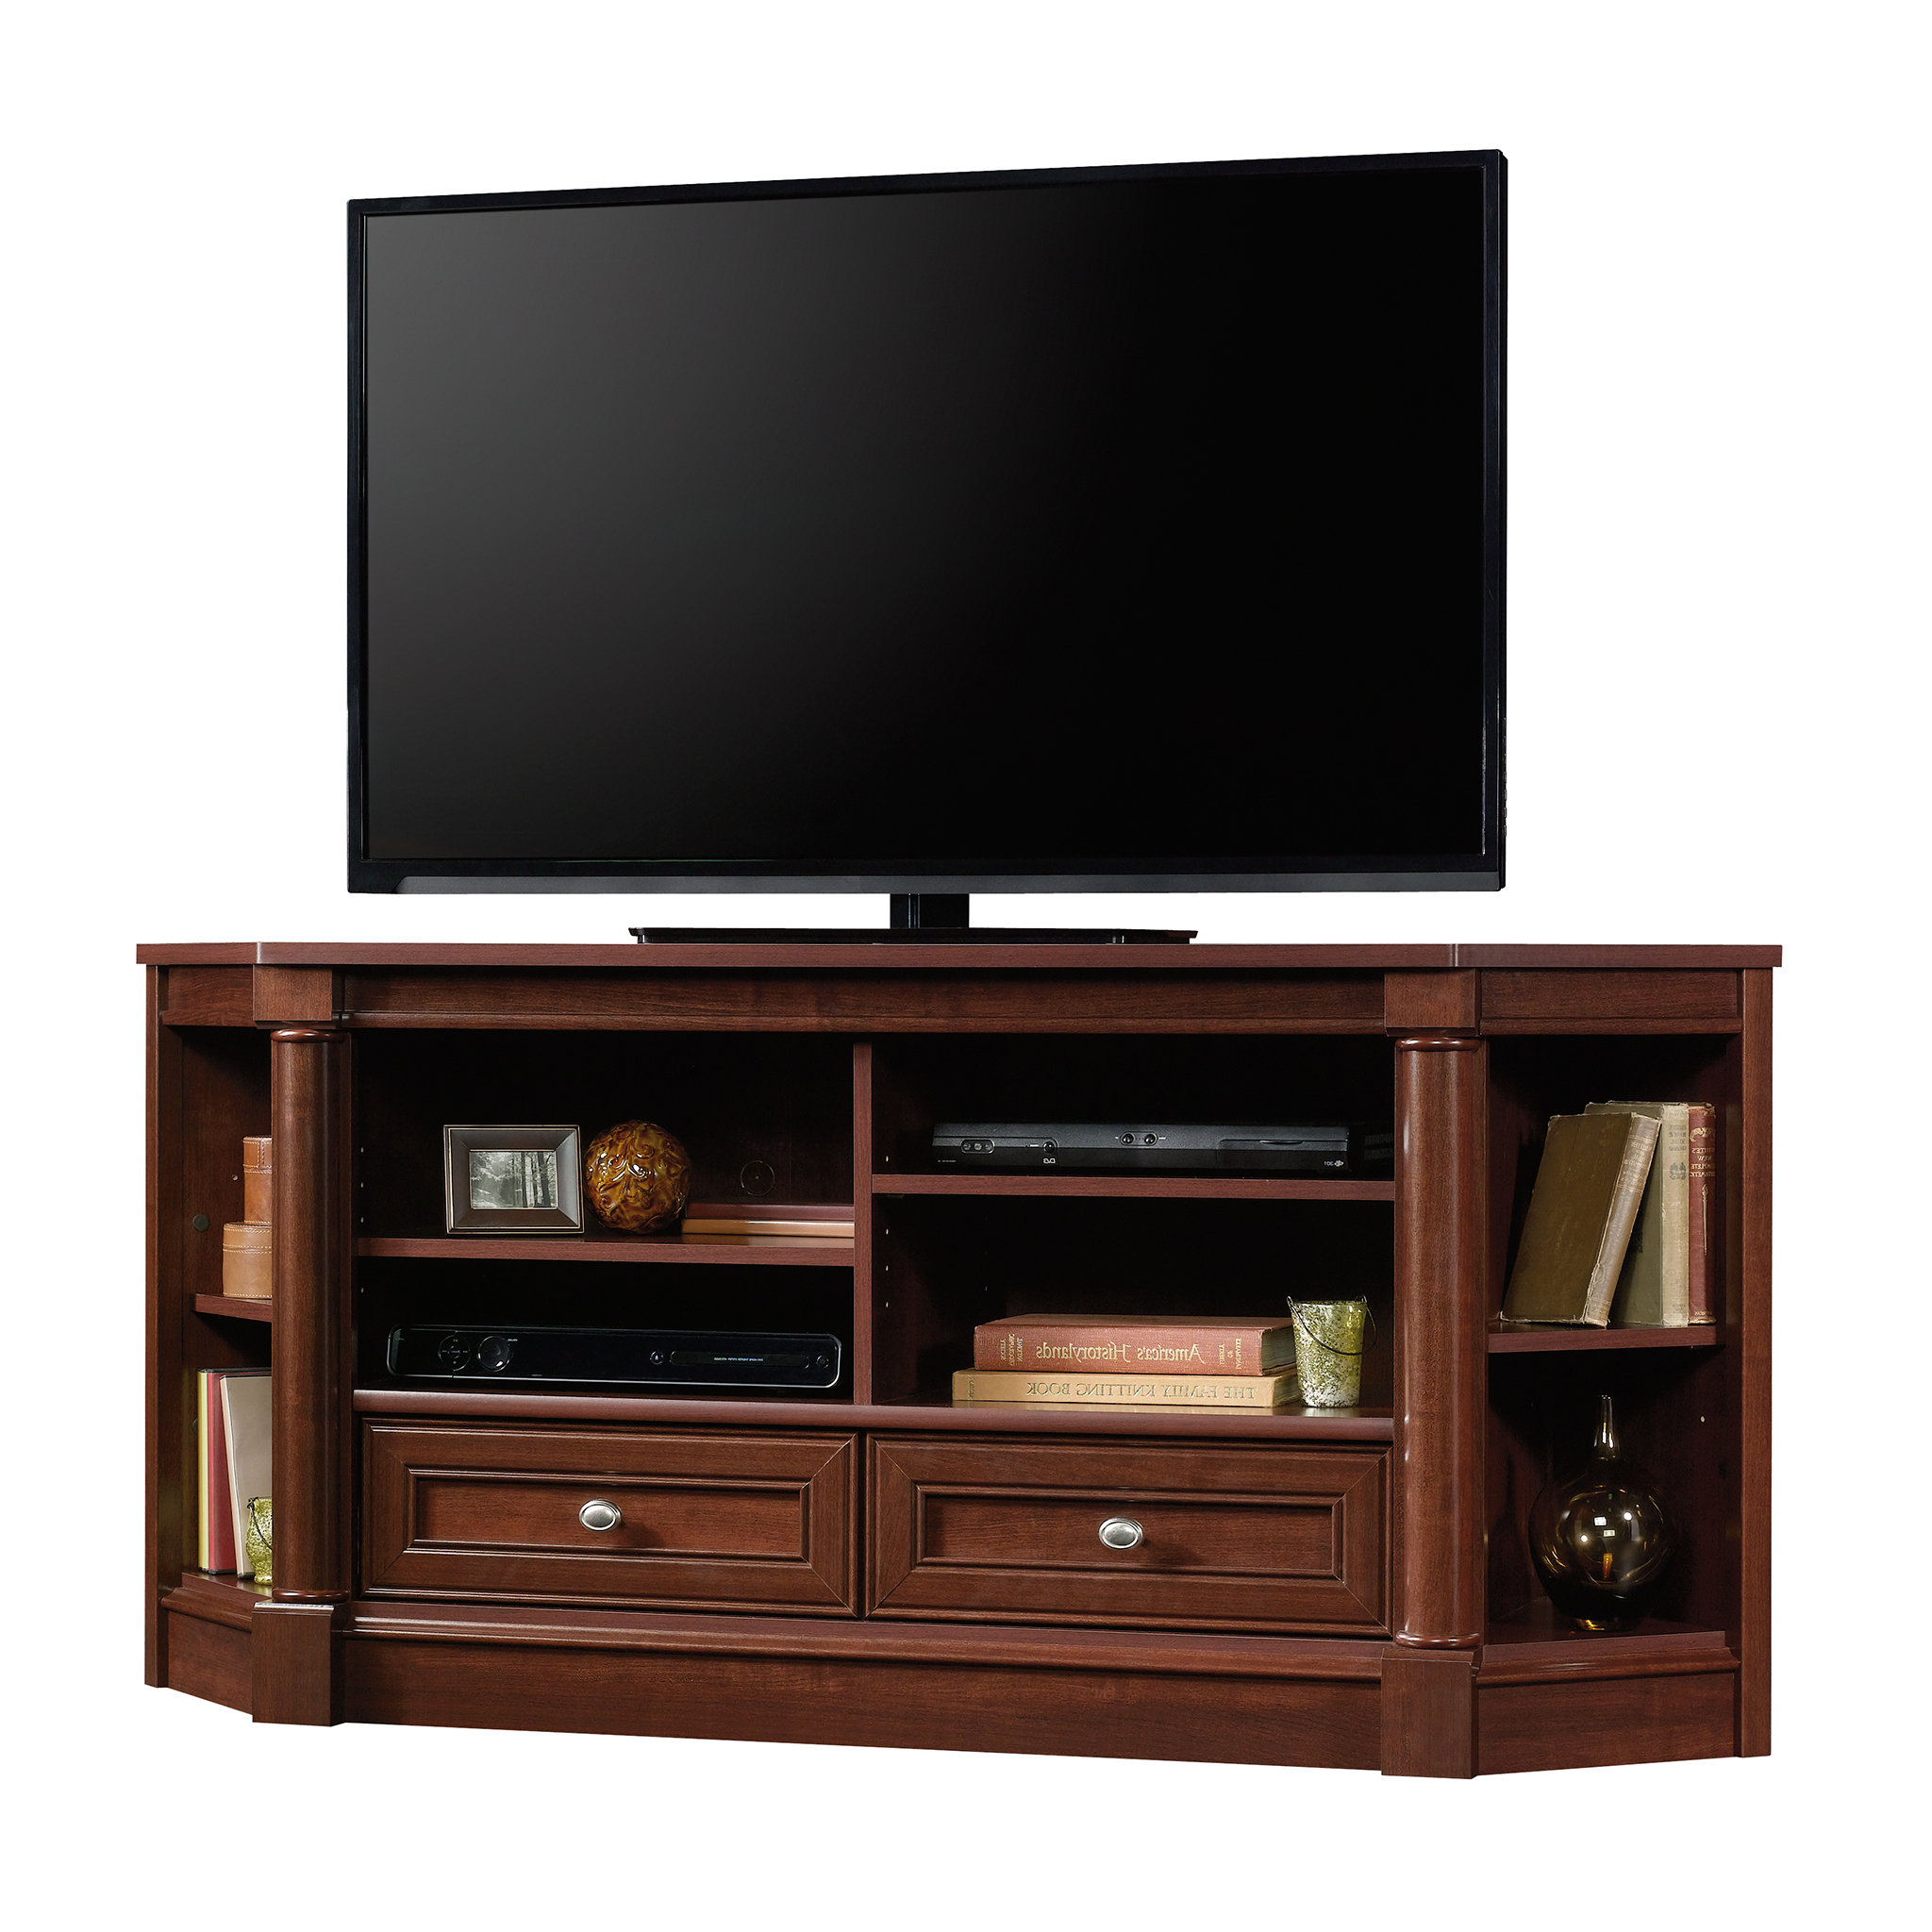 Joss & Main Throughout Corner Tv Stands For 60 Inch Tv (Gallery 14 of 20)